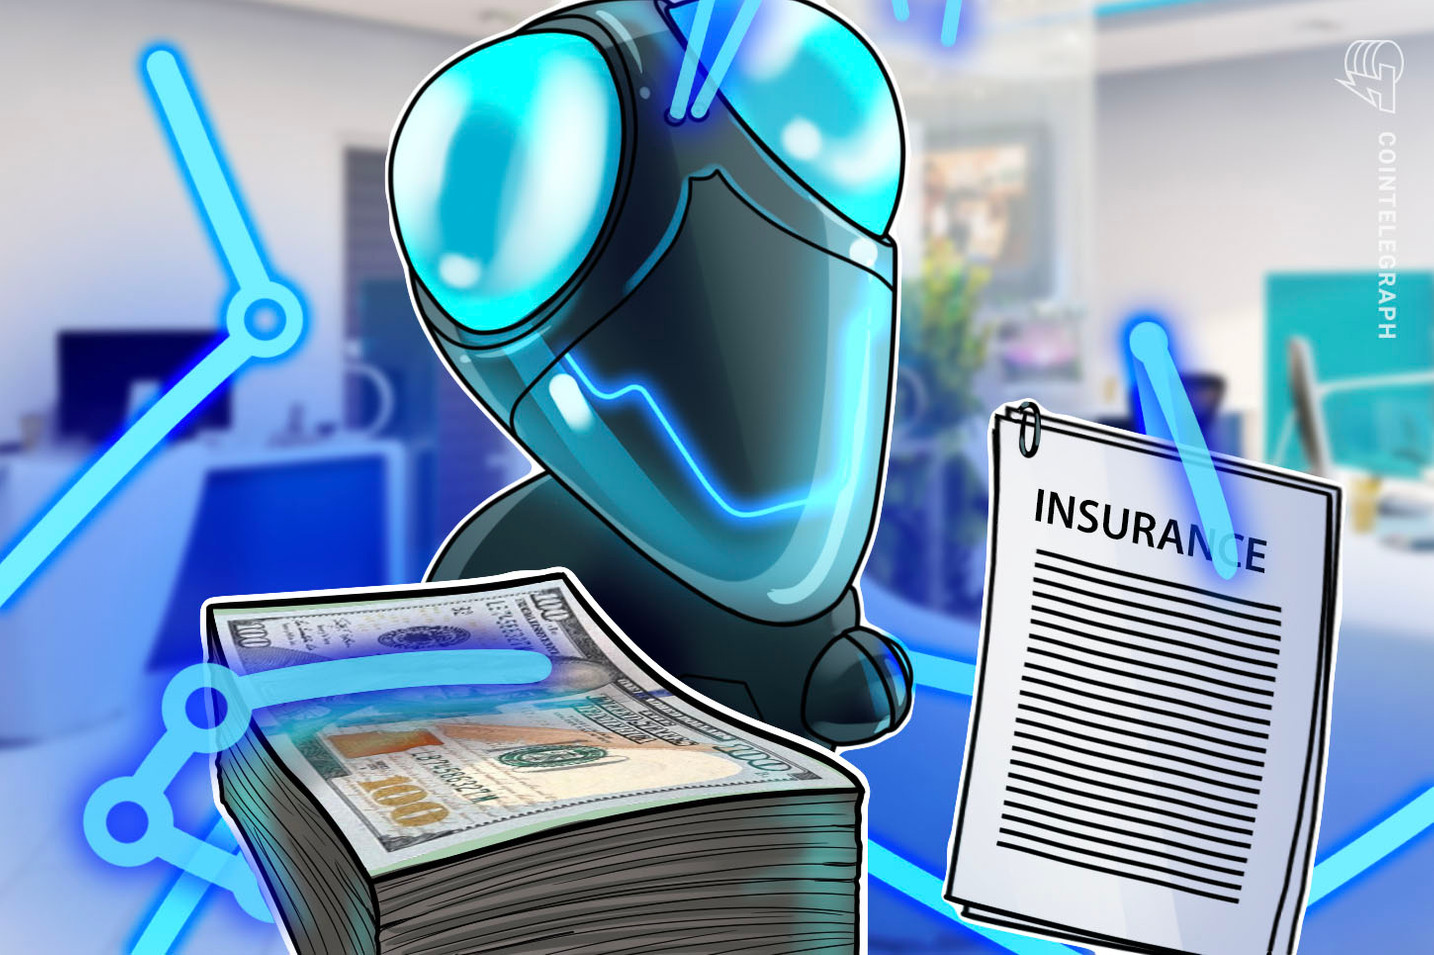 Major Polish Insurance Company Taps Blockchain for Its Paperwork